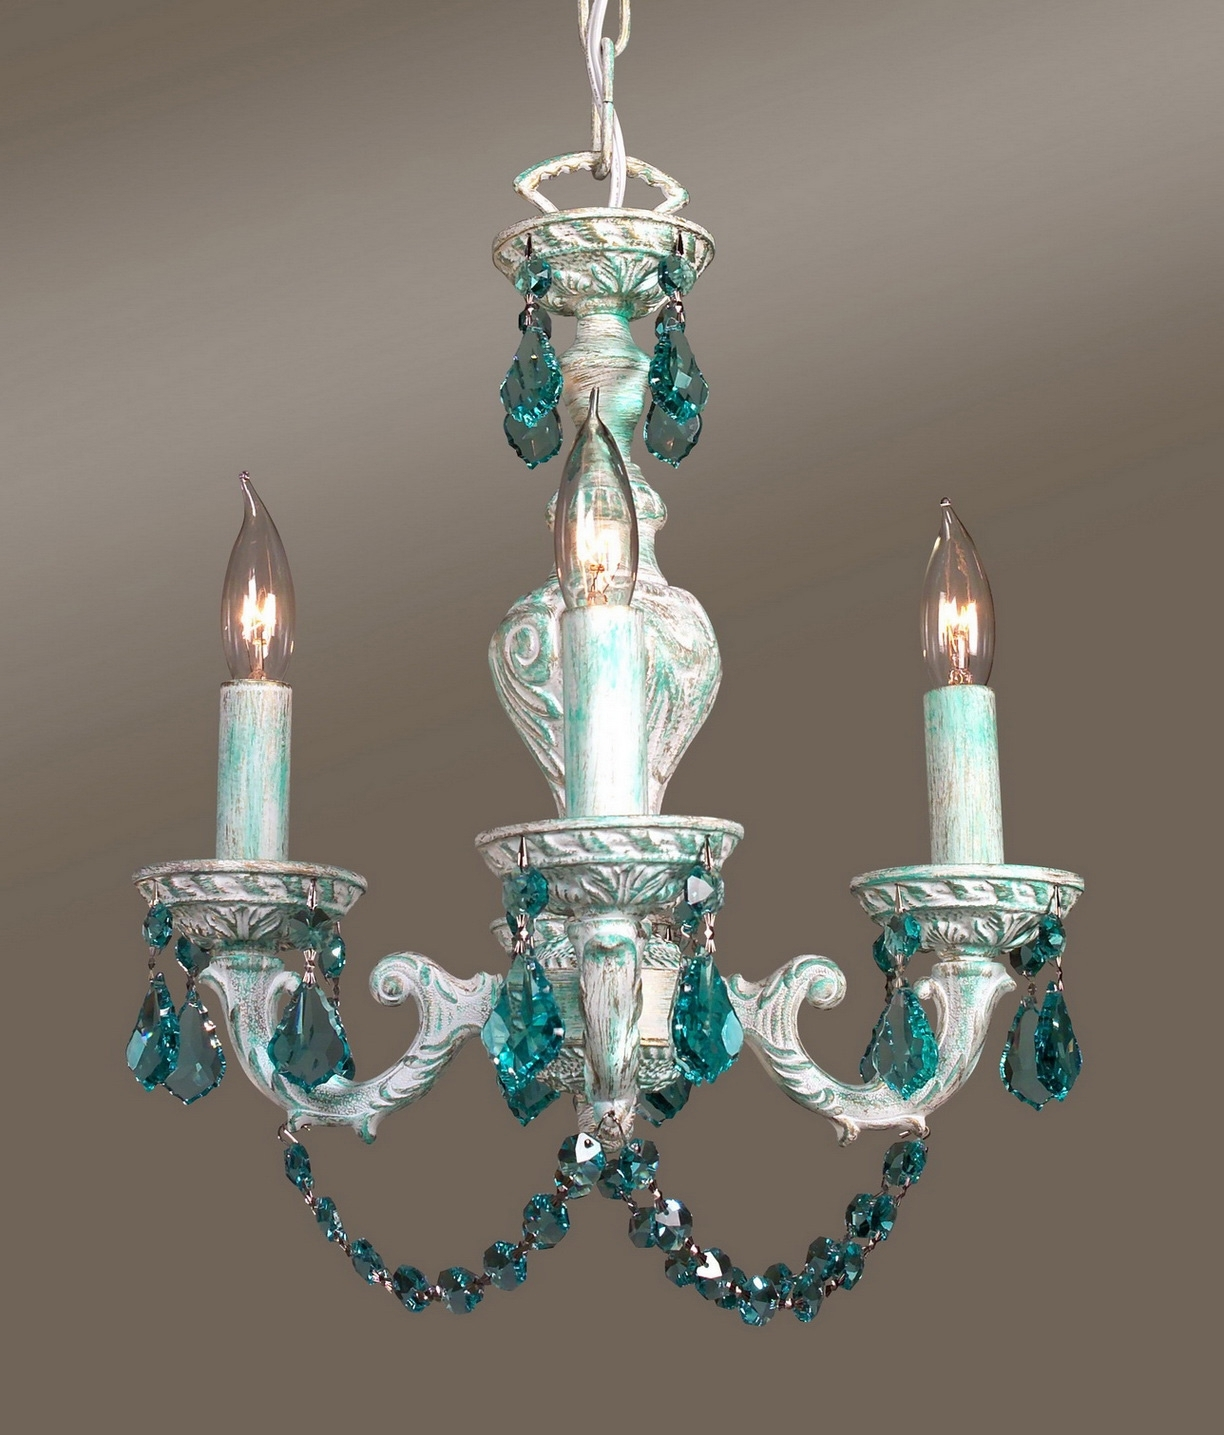 Turquoise Mini Chandeliers Intended For Favorite Mini Chandeliers For Bedrooms Images (View 14 of 15)